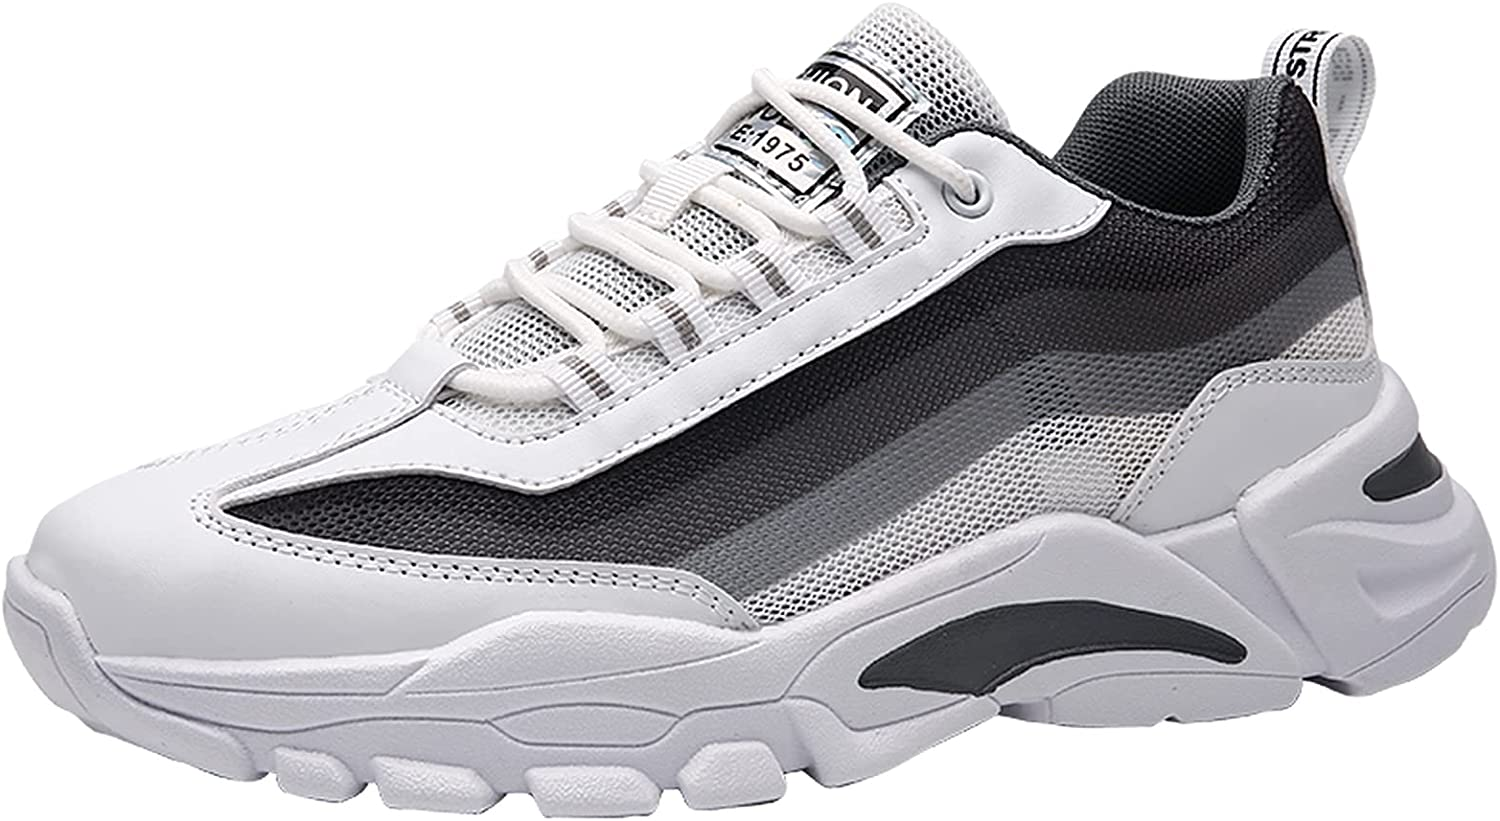 COOPCUP Men's Sneakers Mesh Casual Sho Breathable Nippon regular agency Summer Inventory cleanup selling sale Running